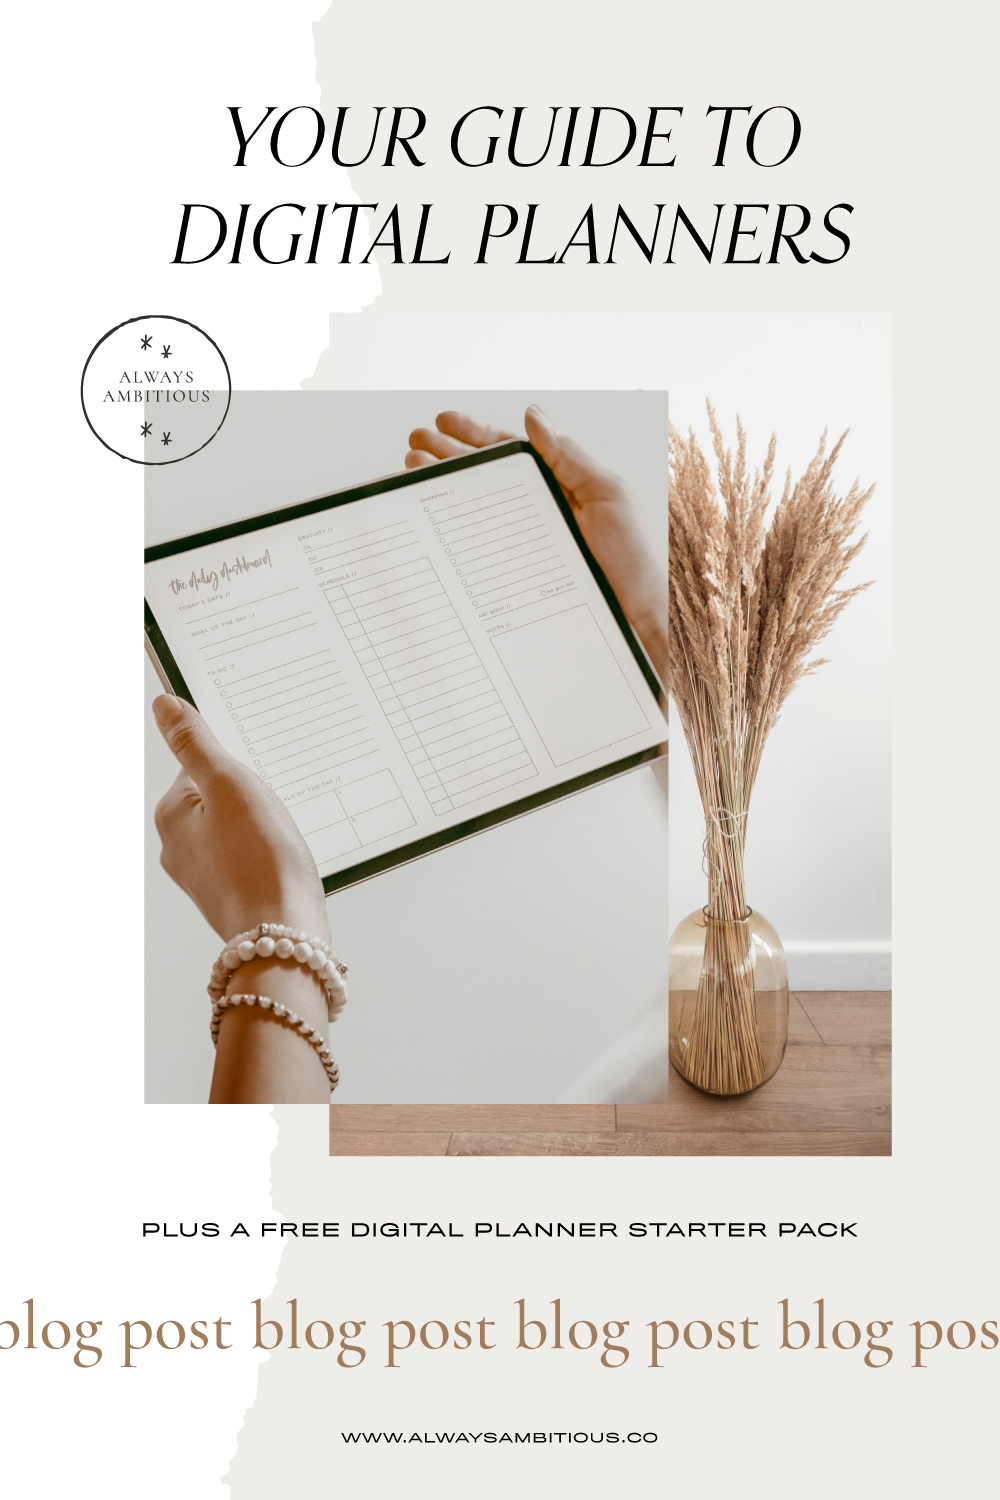 Everything you need to know about digital planners